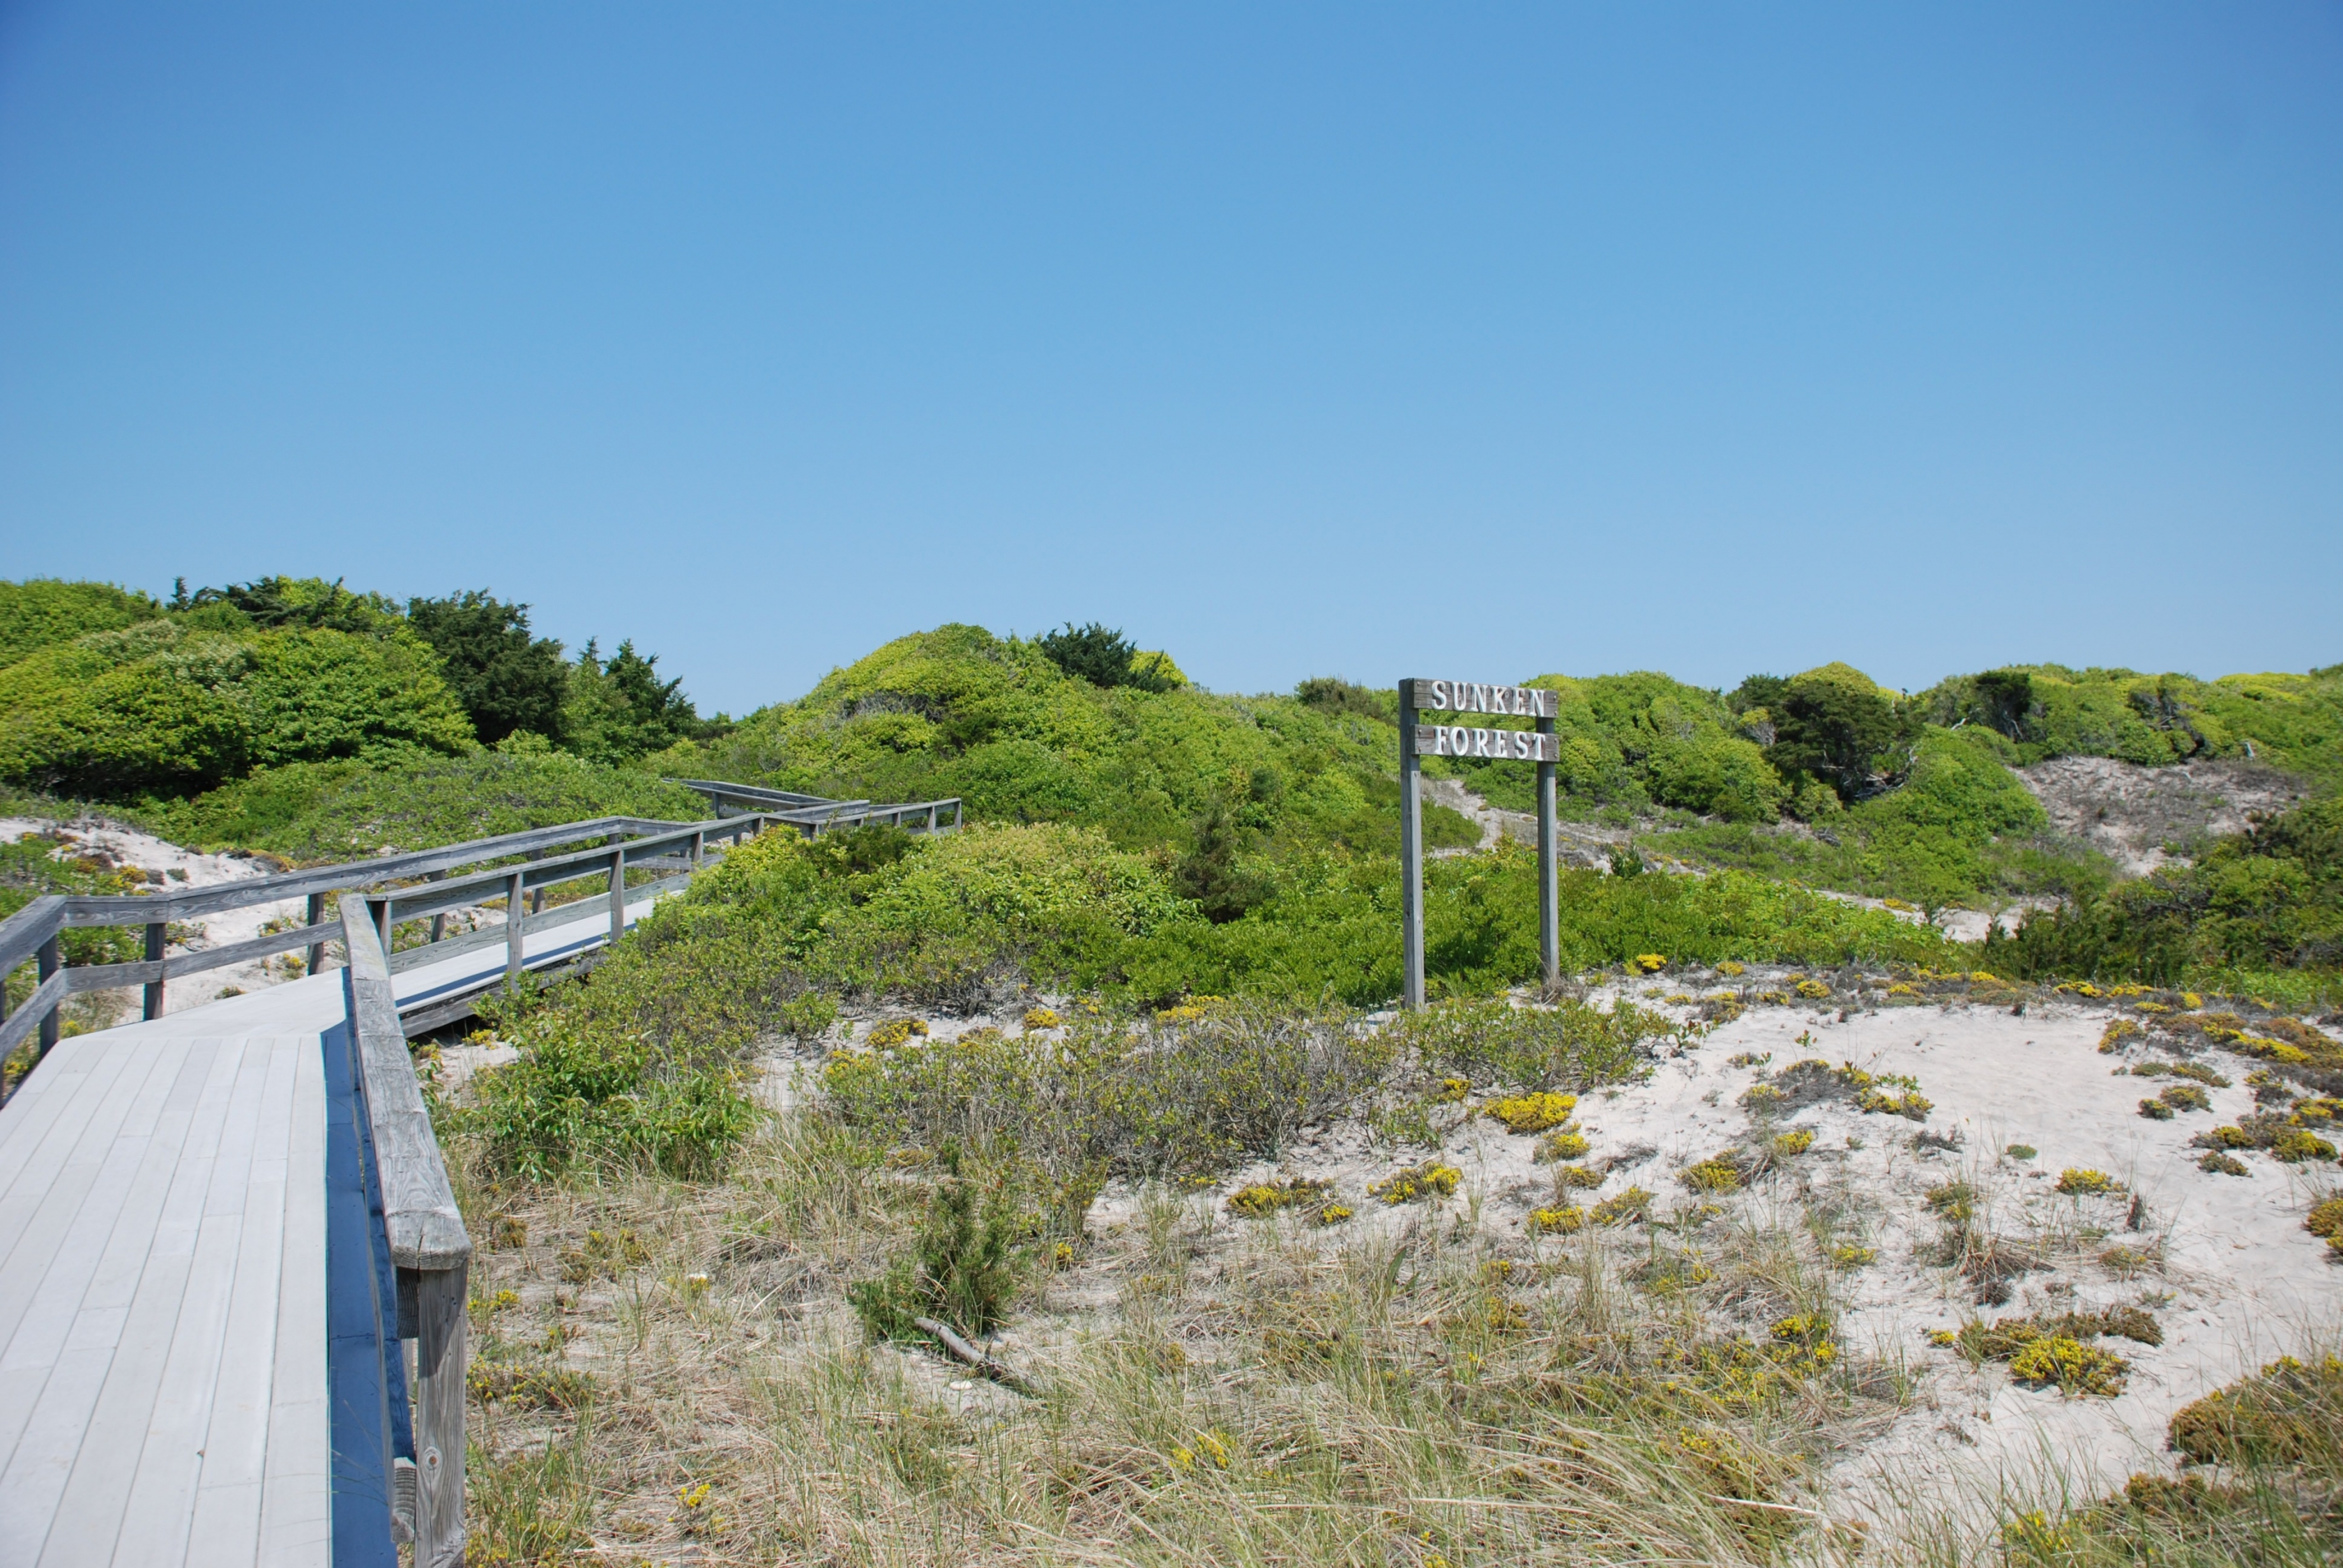 A sign welcomes visitors to the Sunken Forest on the seashore at Fire Island.